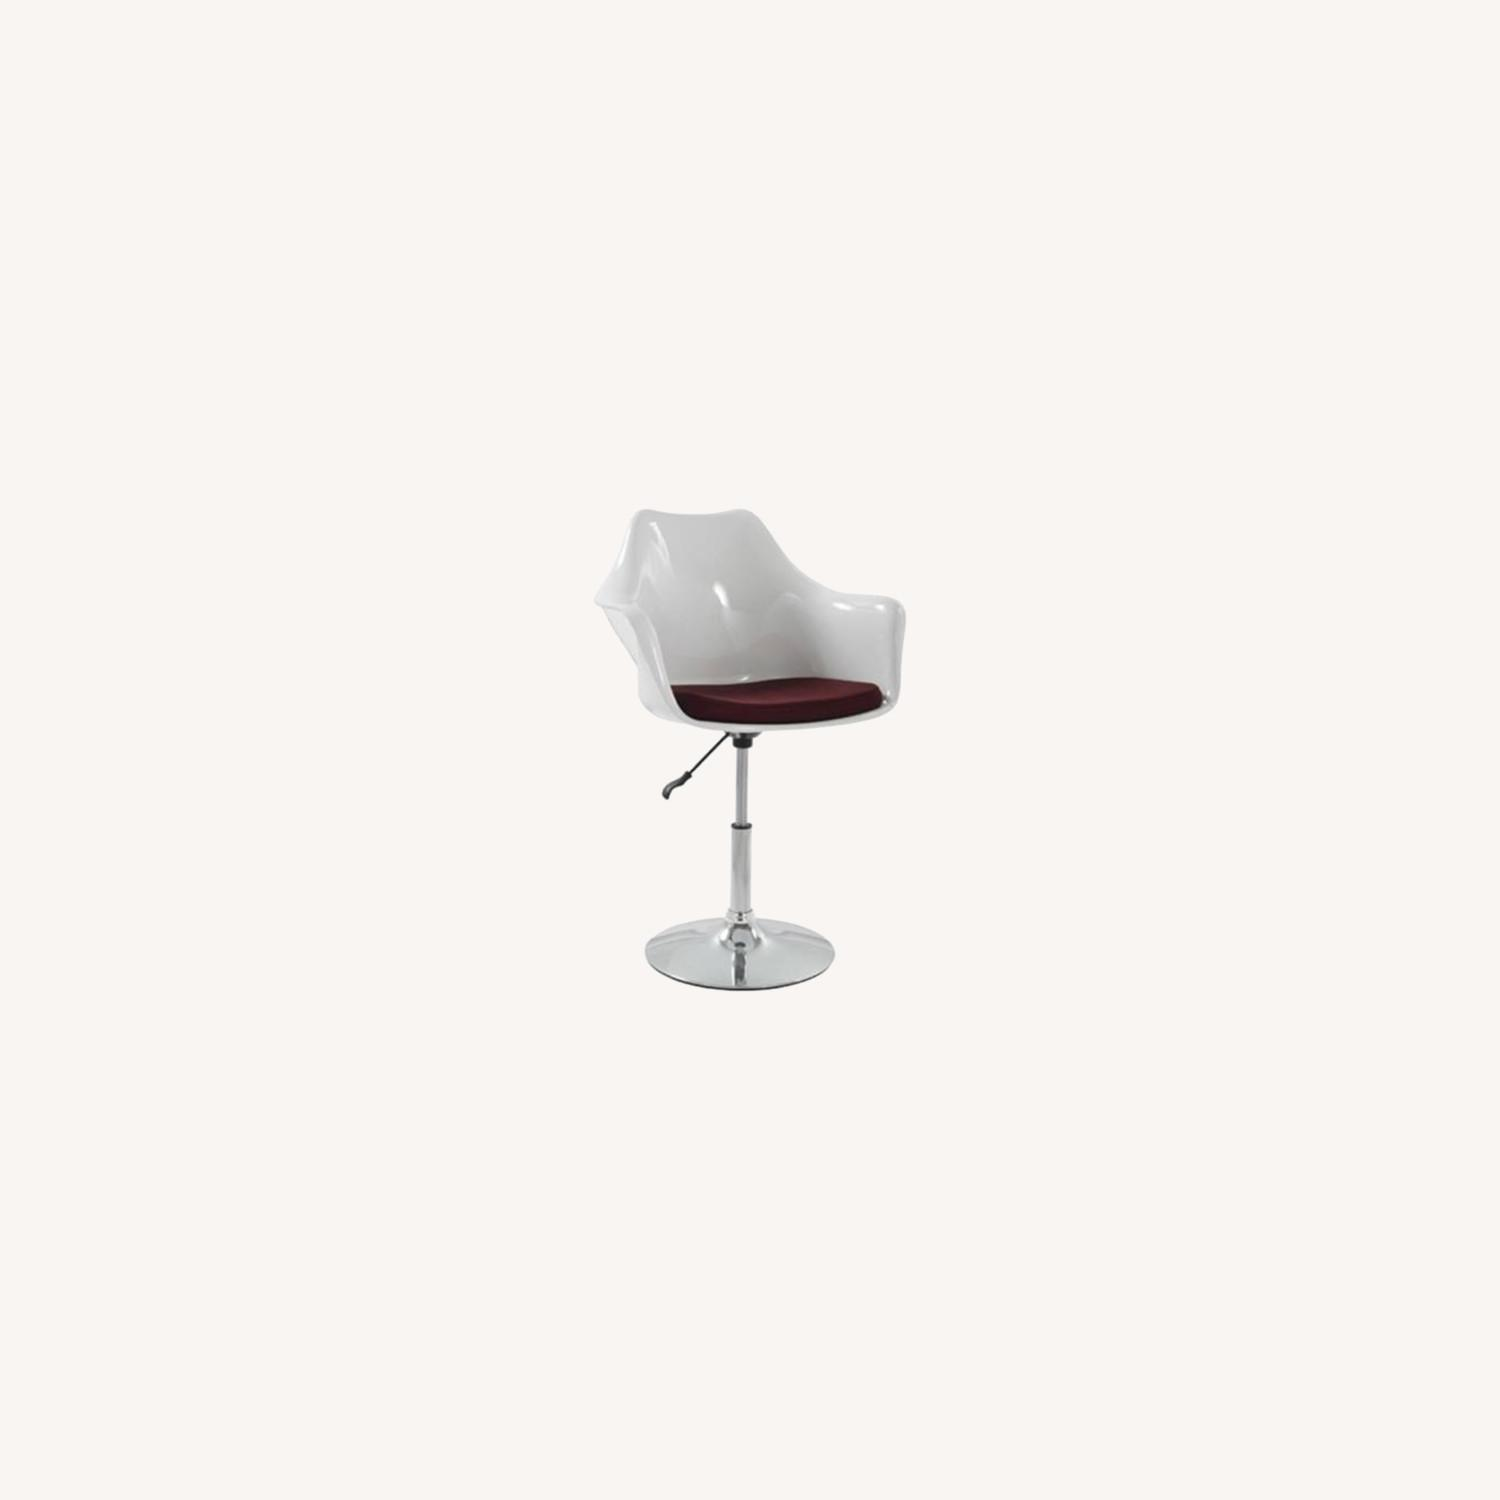 Height-Adjustable Swivel Arm Chair In White ABS - image-3